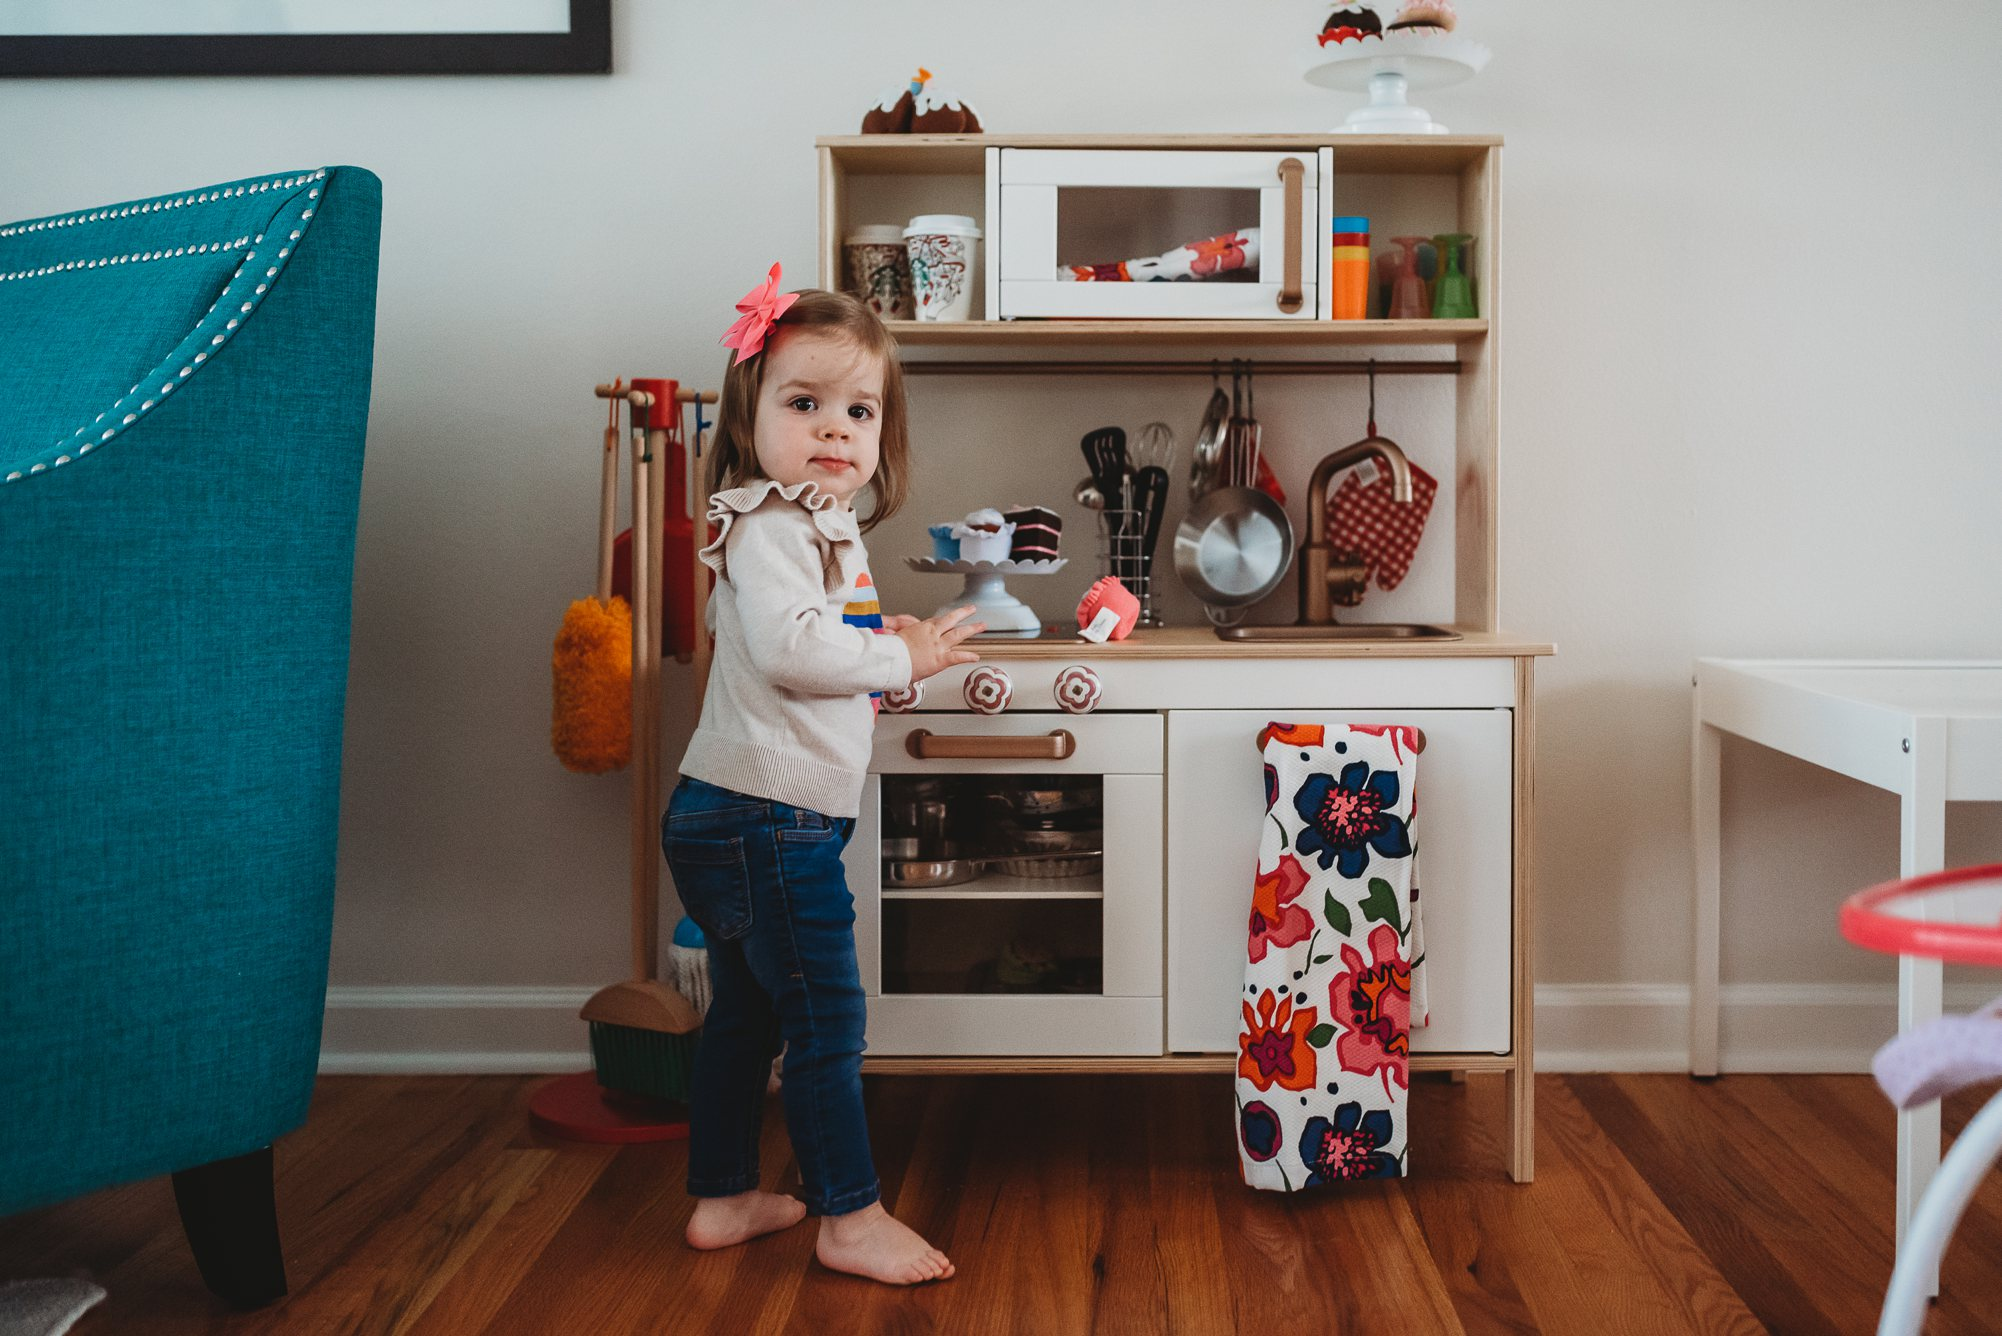 girl in play kitchen-st louis family photographer